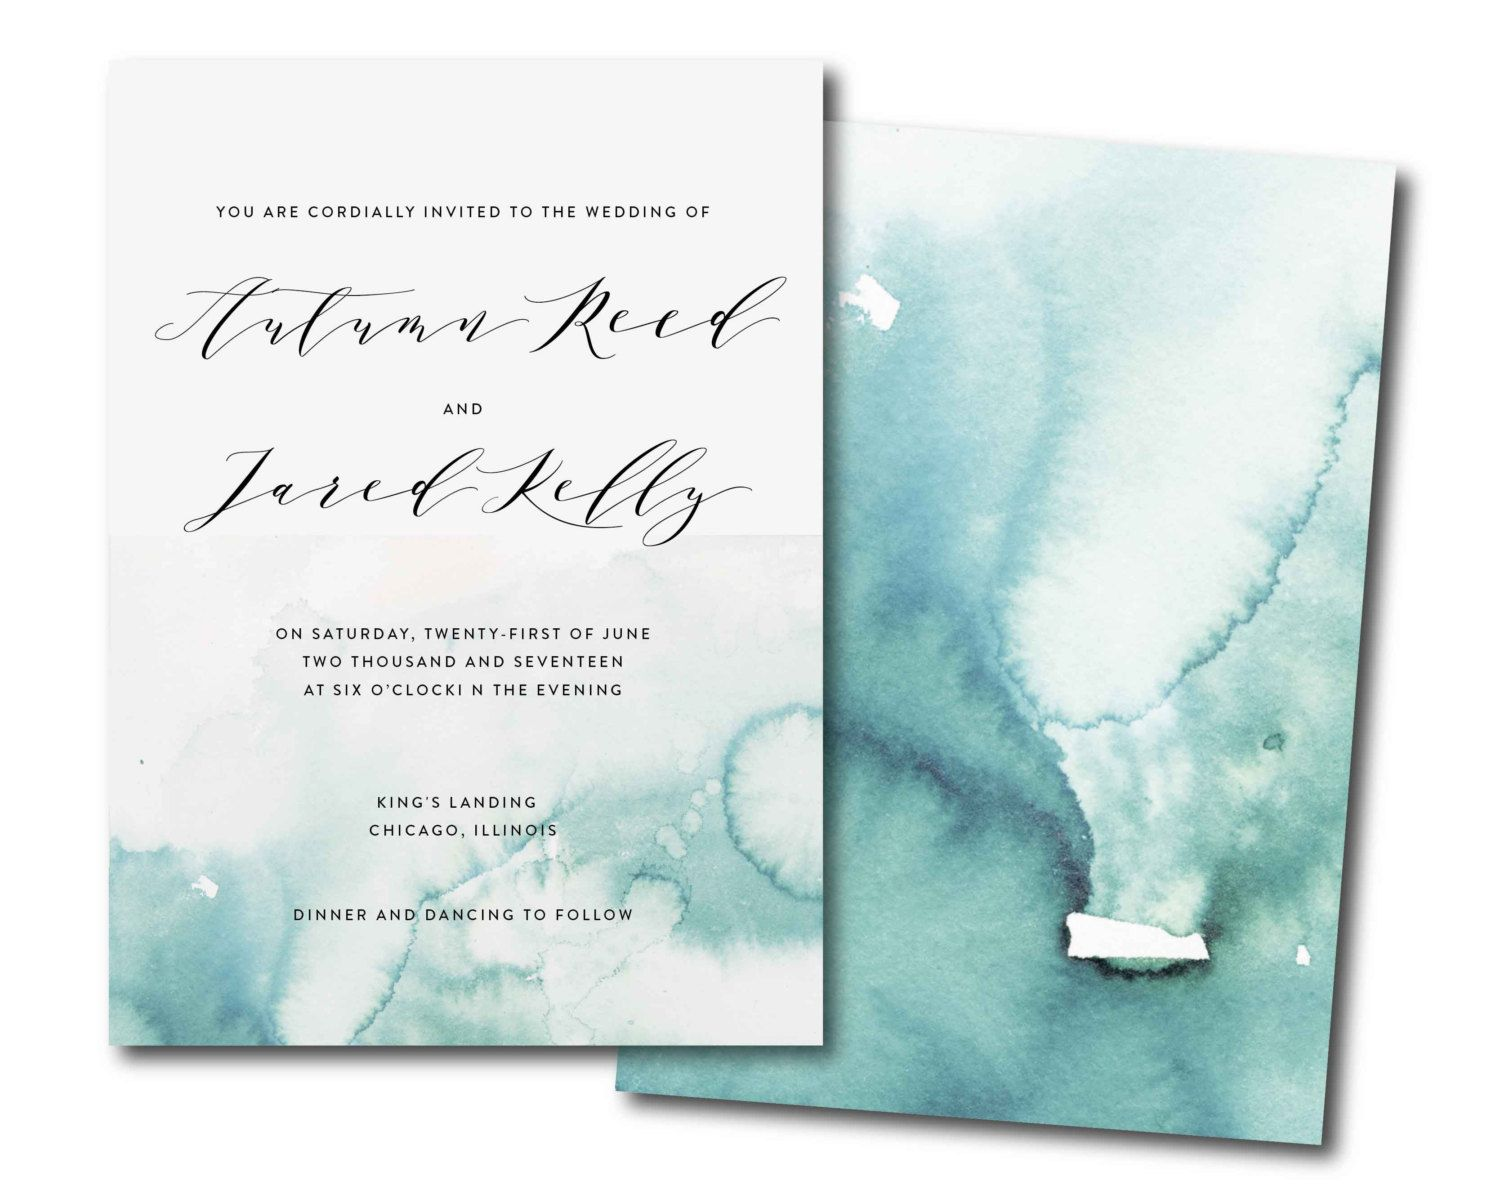 Watercolor Splash Printable Invitation Watercolor Wedding Etsy Watercolor Invitations Watercolor Wedding Invitations Calligraphy Wedding Invitation